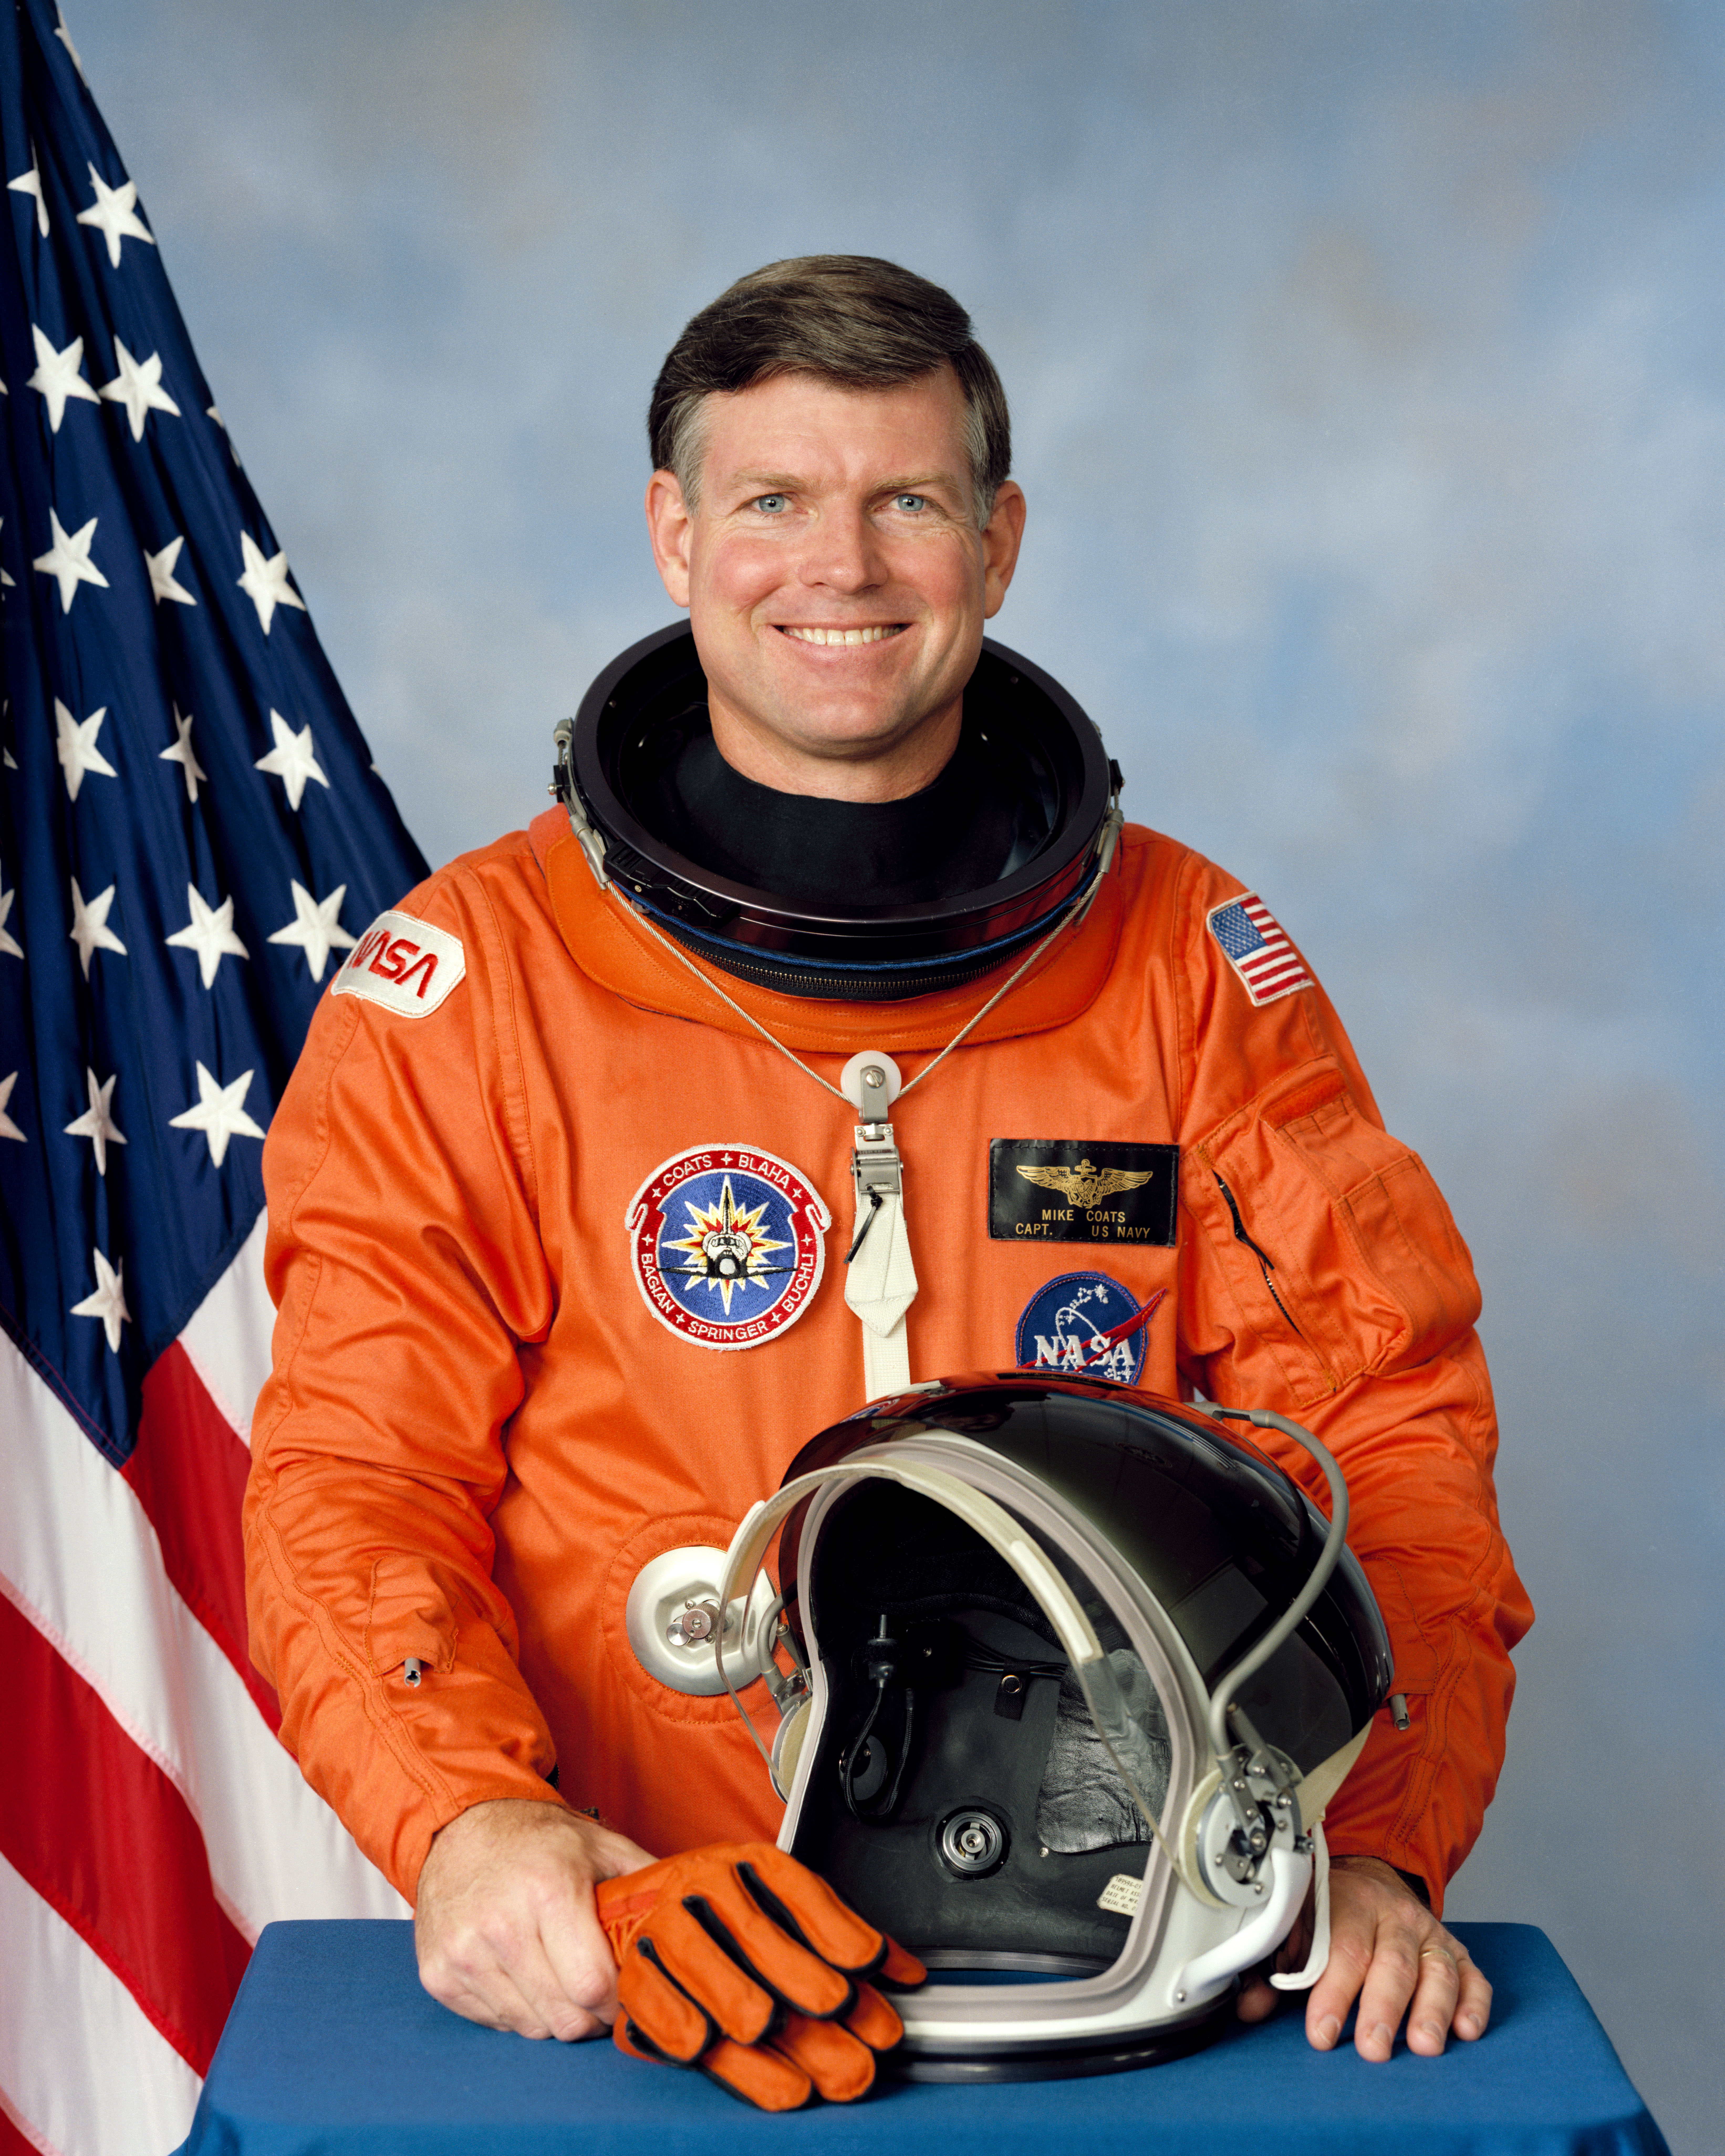 Astronaut Michael Coats, NASA photo Source: Wikipedia (NASA site unavailable January 2019) MichaelCoats.jpg